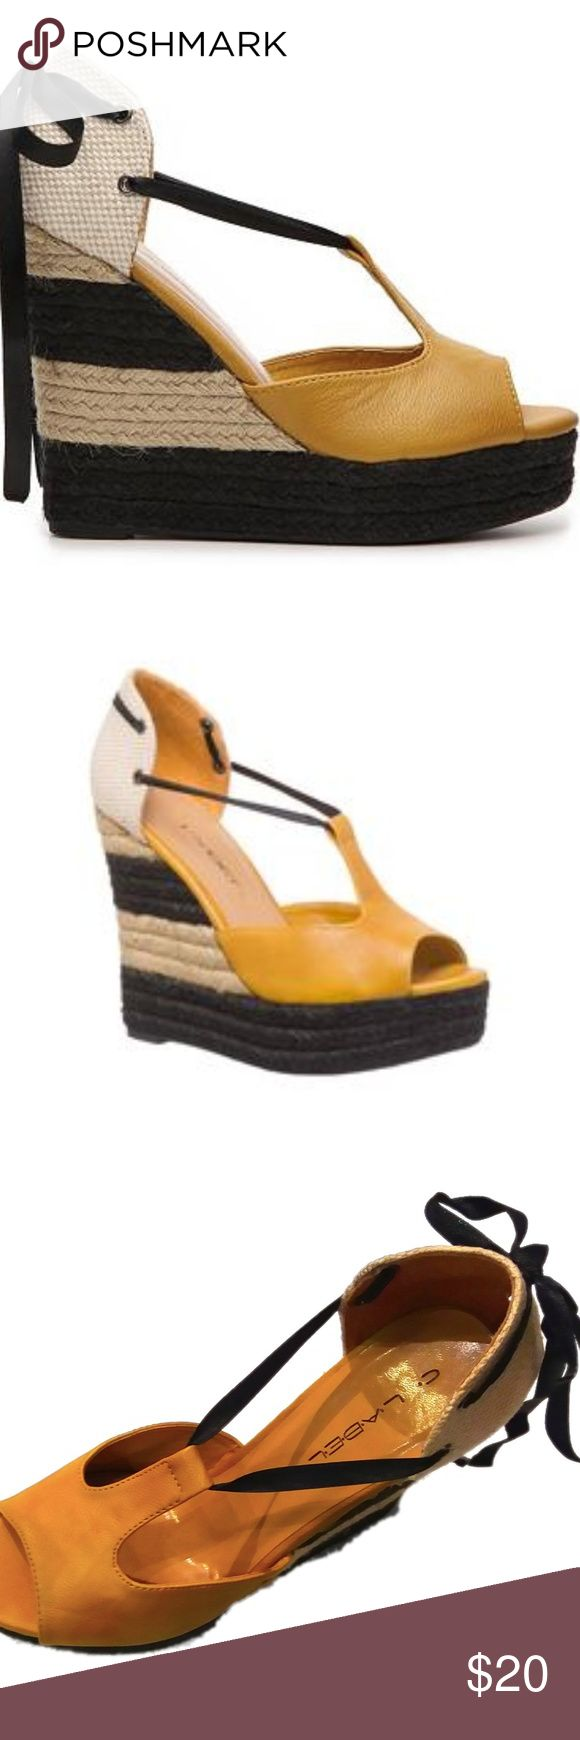 "Yellow Woven Wedge Key Features: Summery golden color with pretty black ribbon accent Ribbon can be tied in the front or back for added personal style Black and Tan large striped woven wedge Synthetic lower; Man made faux leather upper materials  Heel measures approximately 4.75""  Platform measures approximately 1.5"" US Women sizes. C-Label Shoes Sandals"